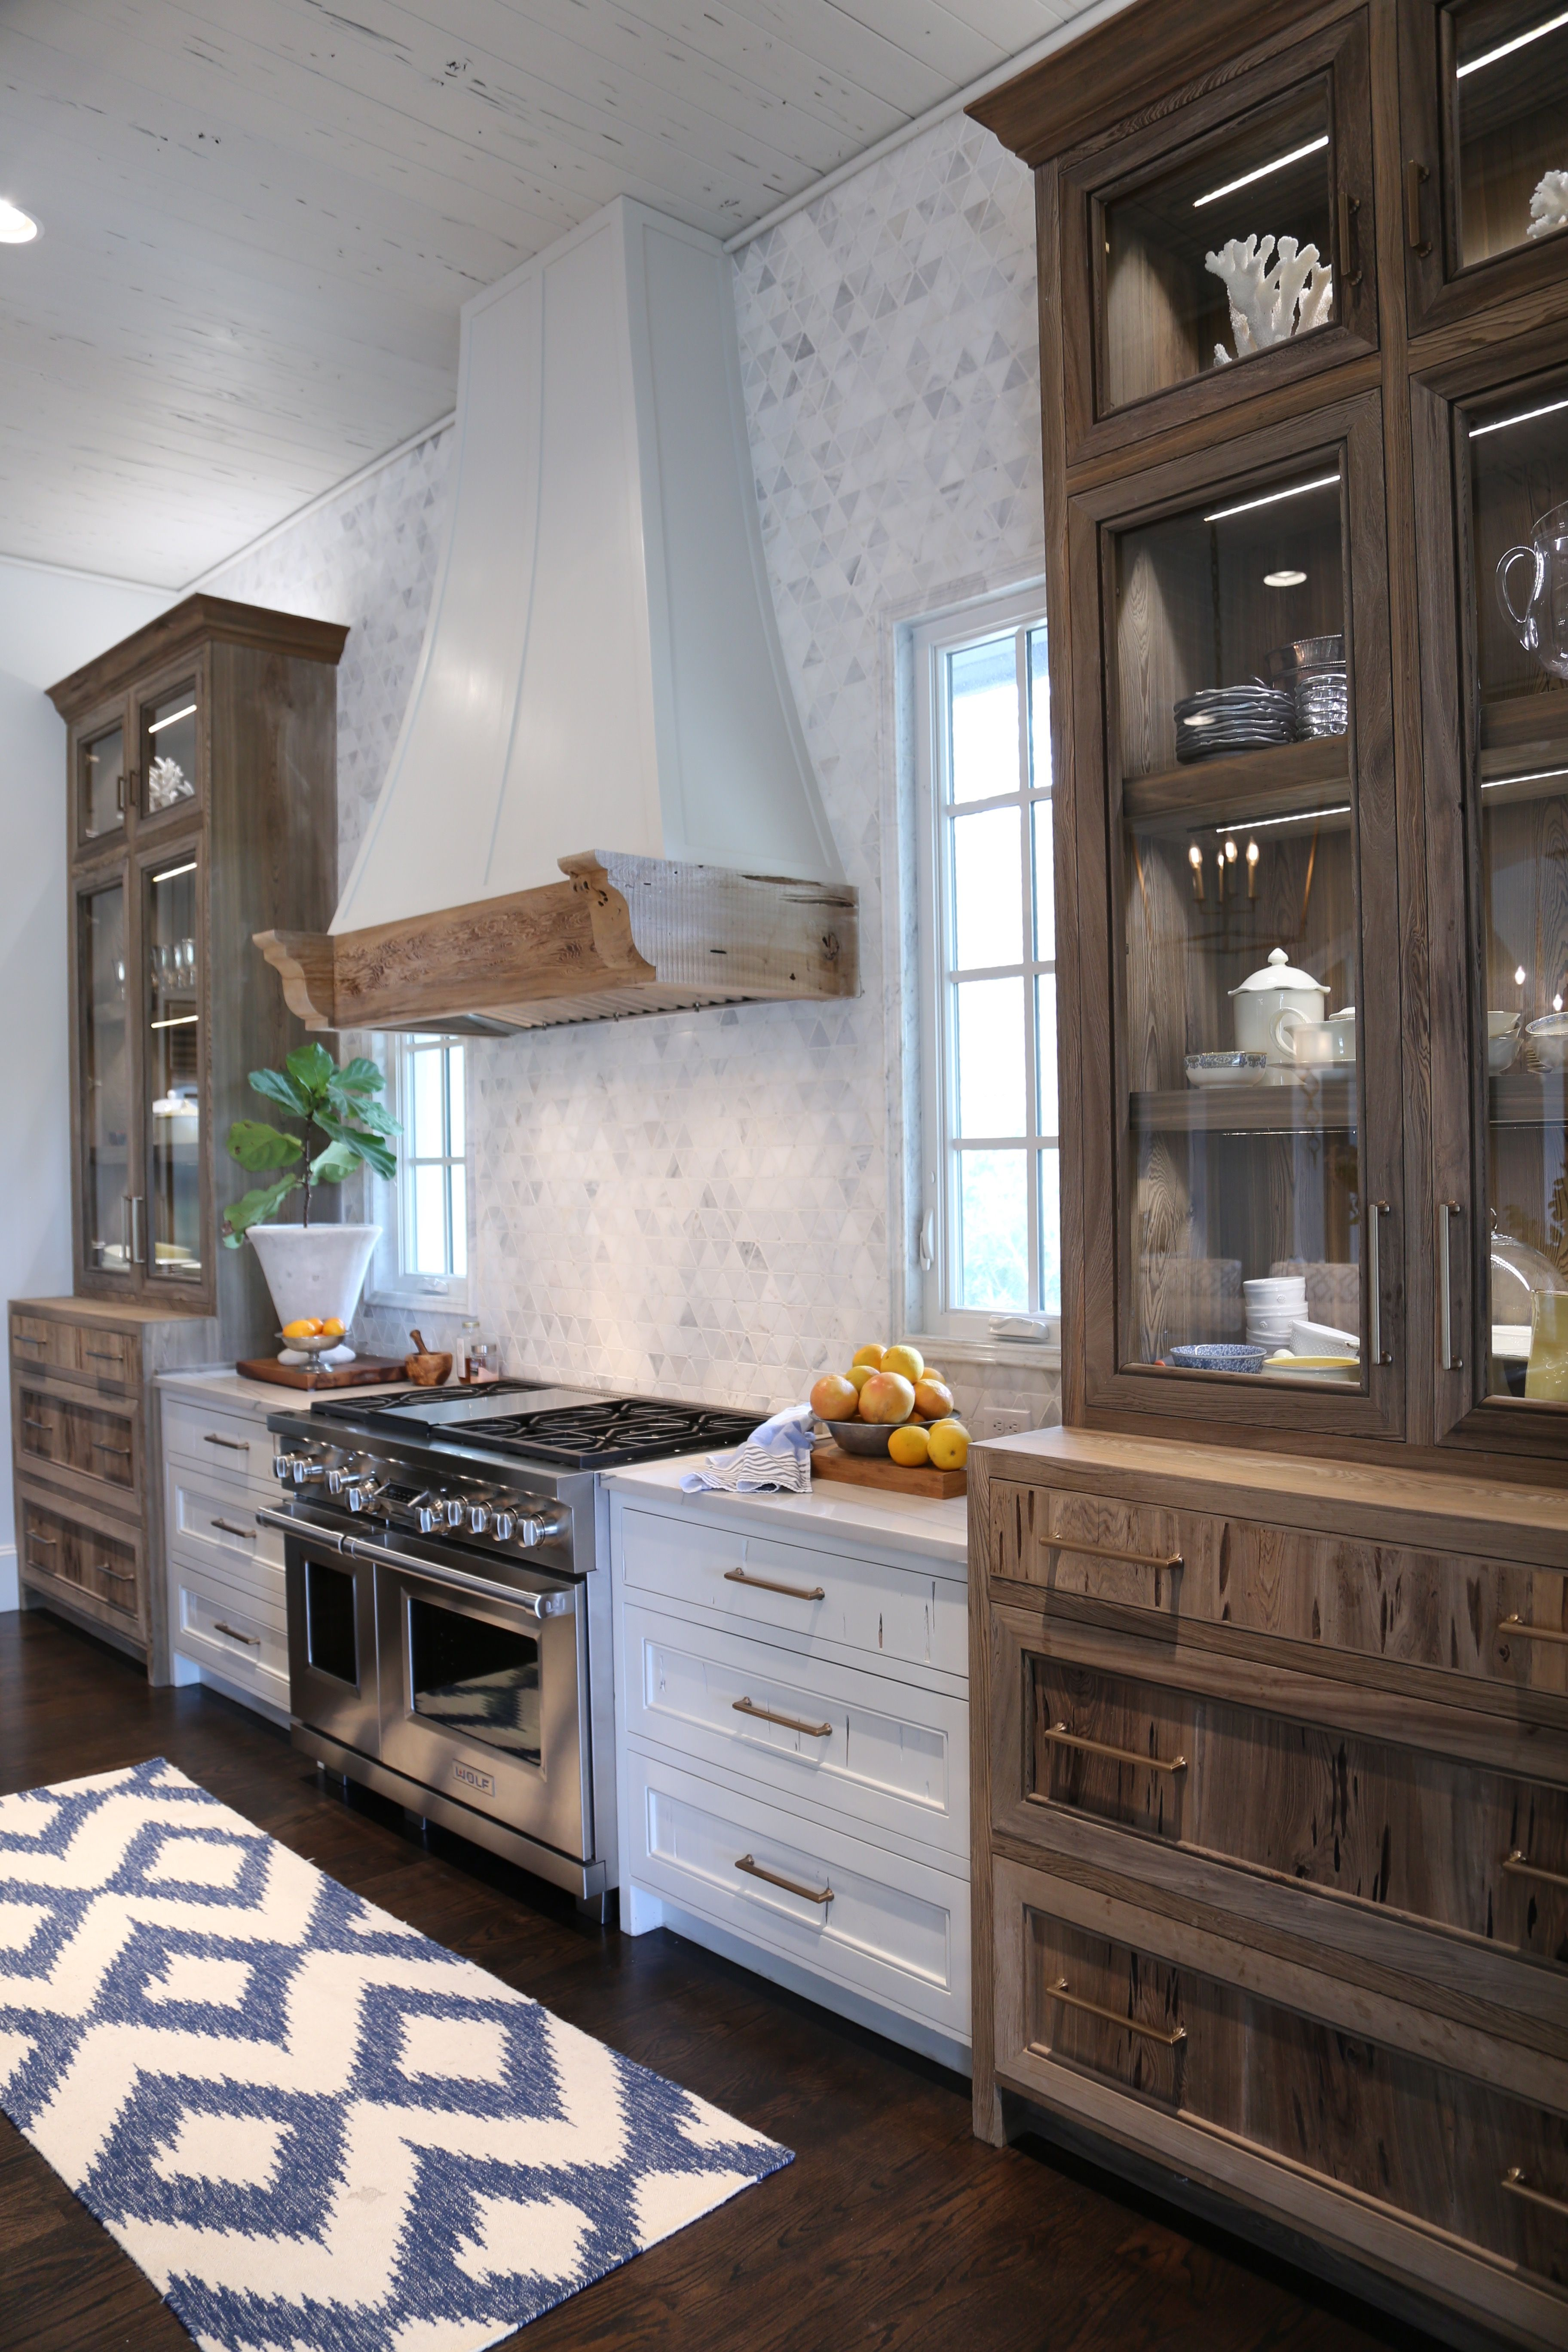 Wood glass front cabinetry | Kitchens/Cocinas | Pinterest | Cocinas ...